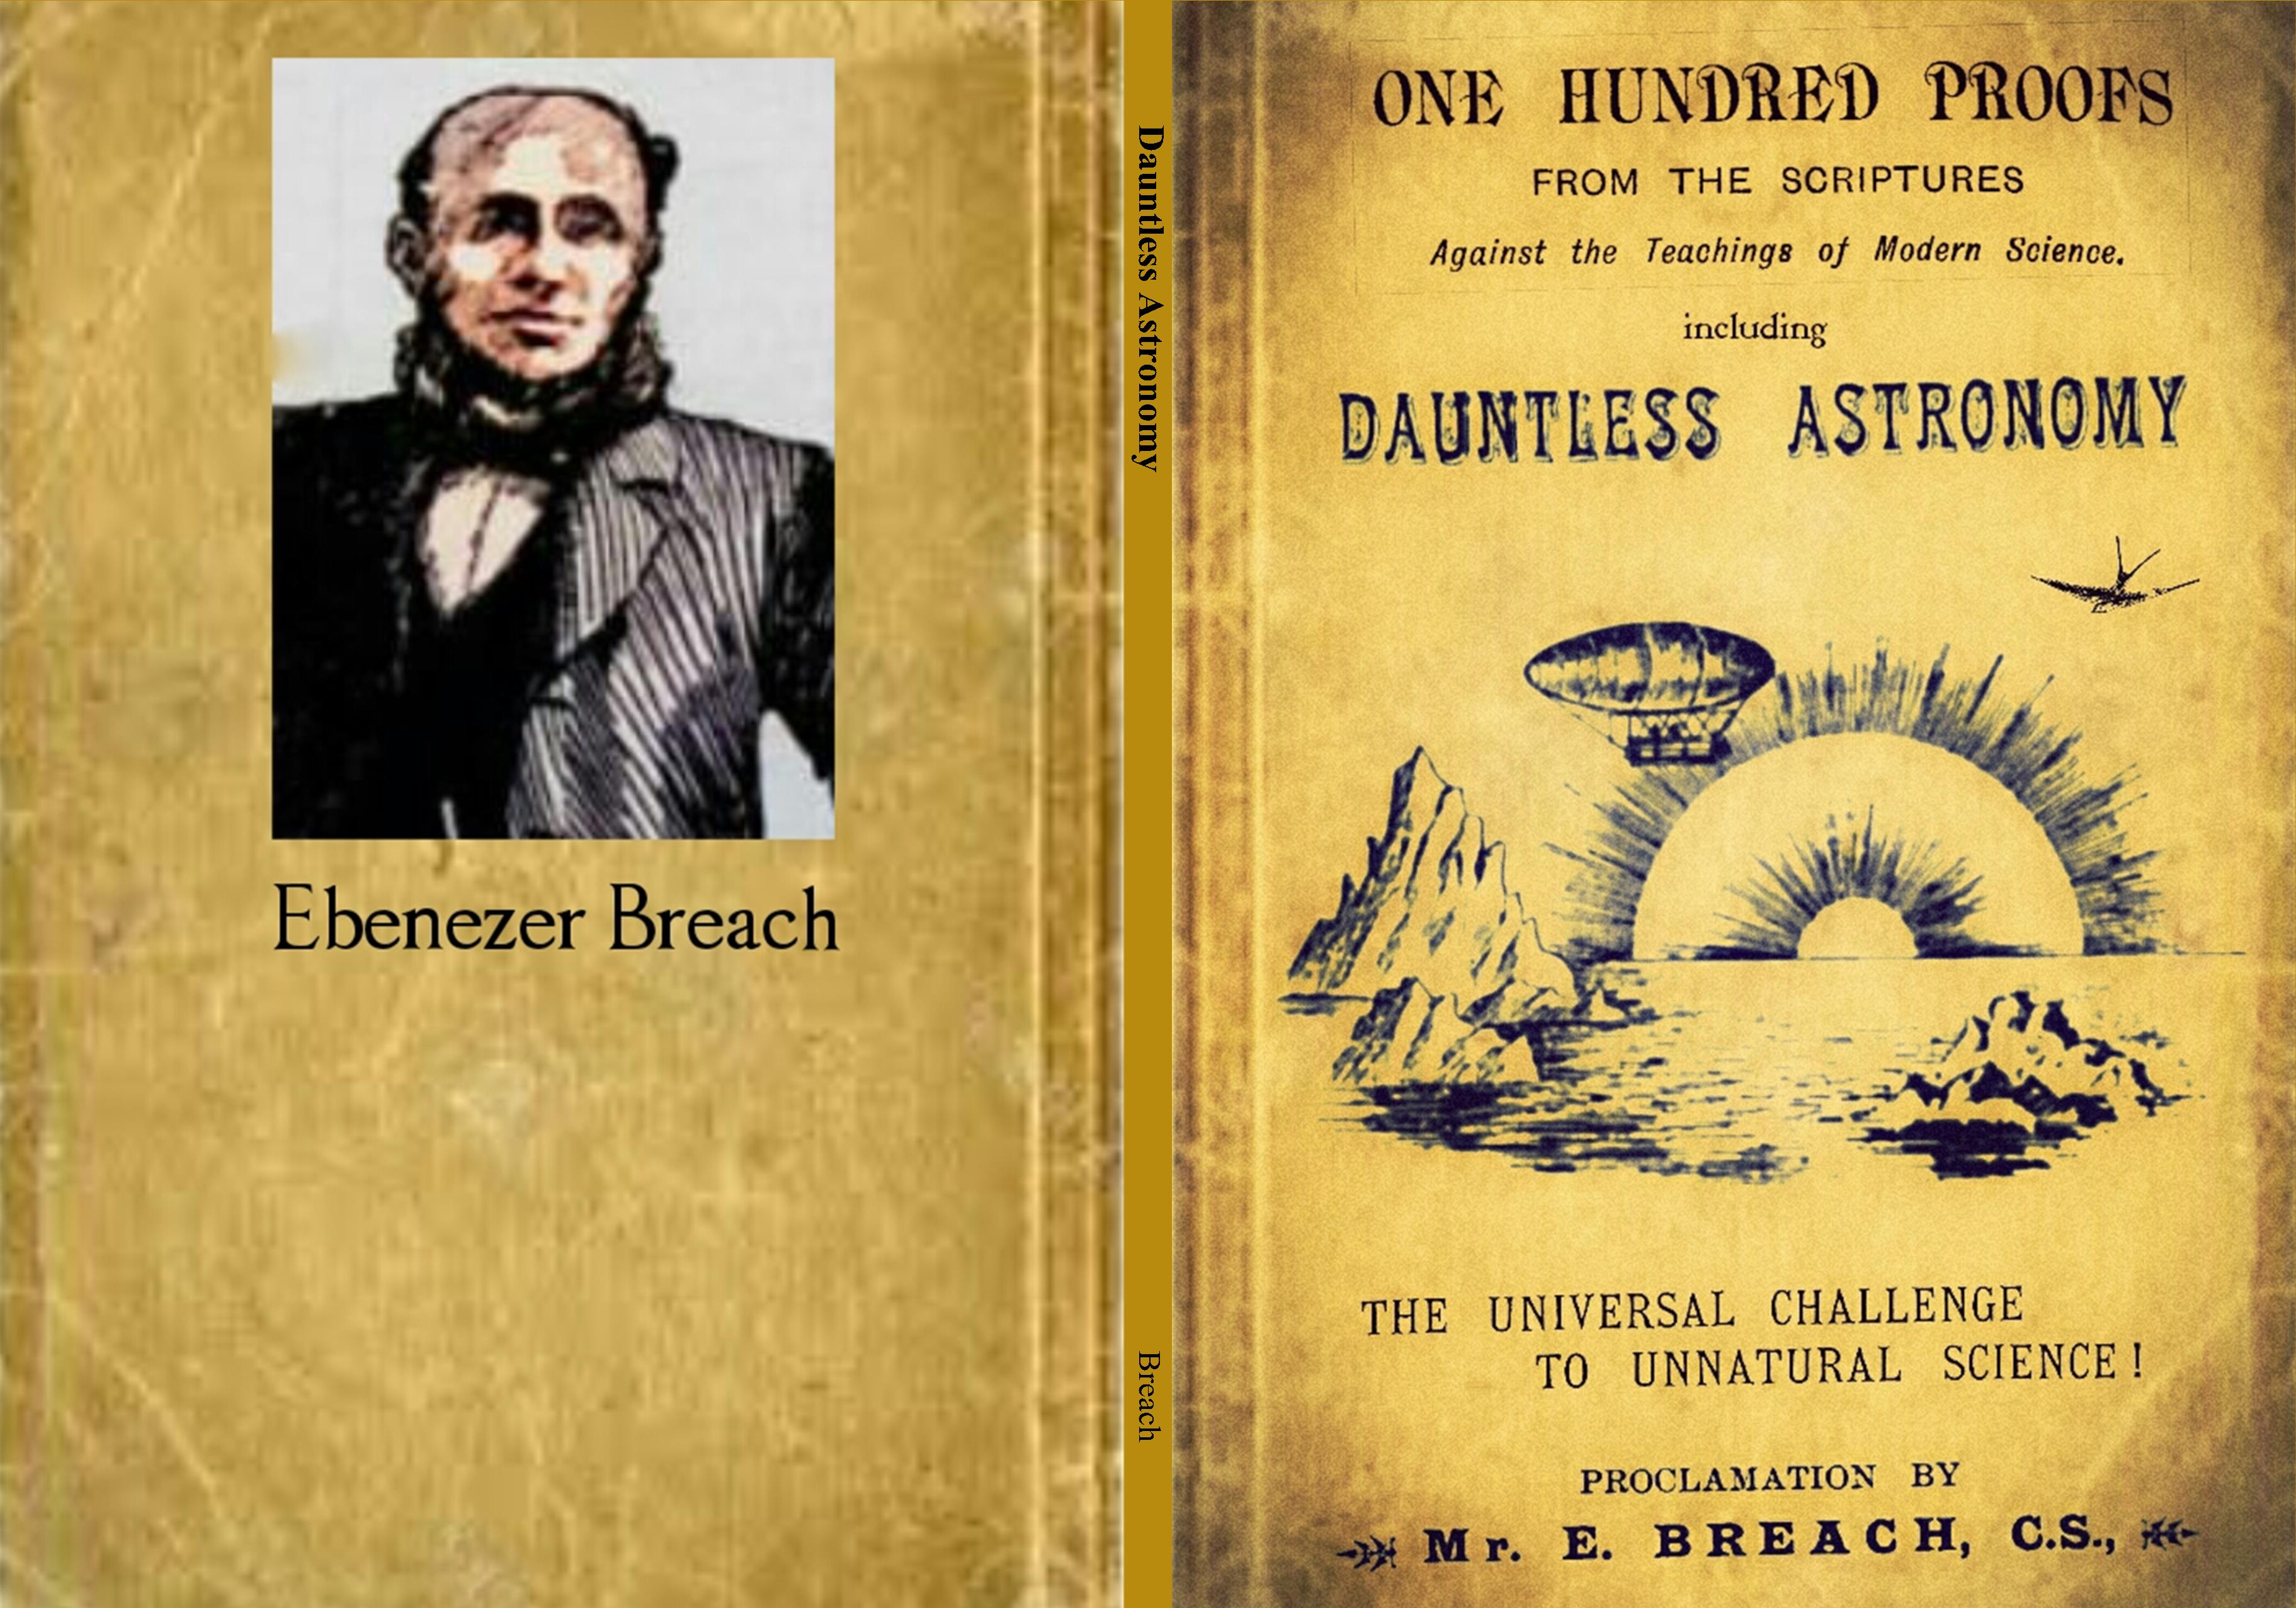 Dauntless Astronomy: The Ultimate Archival Proofs of Breach cover image